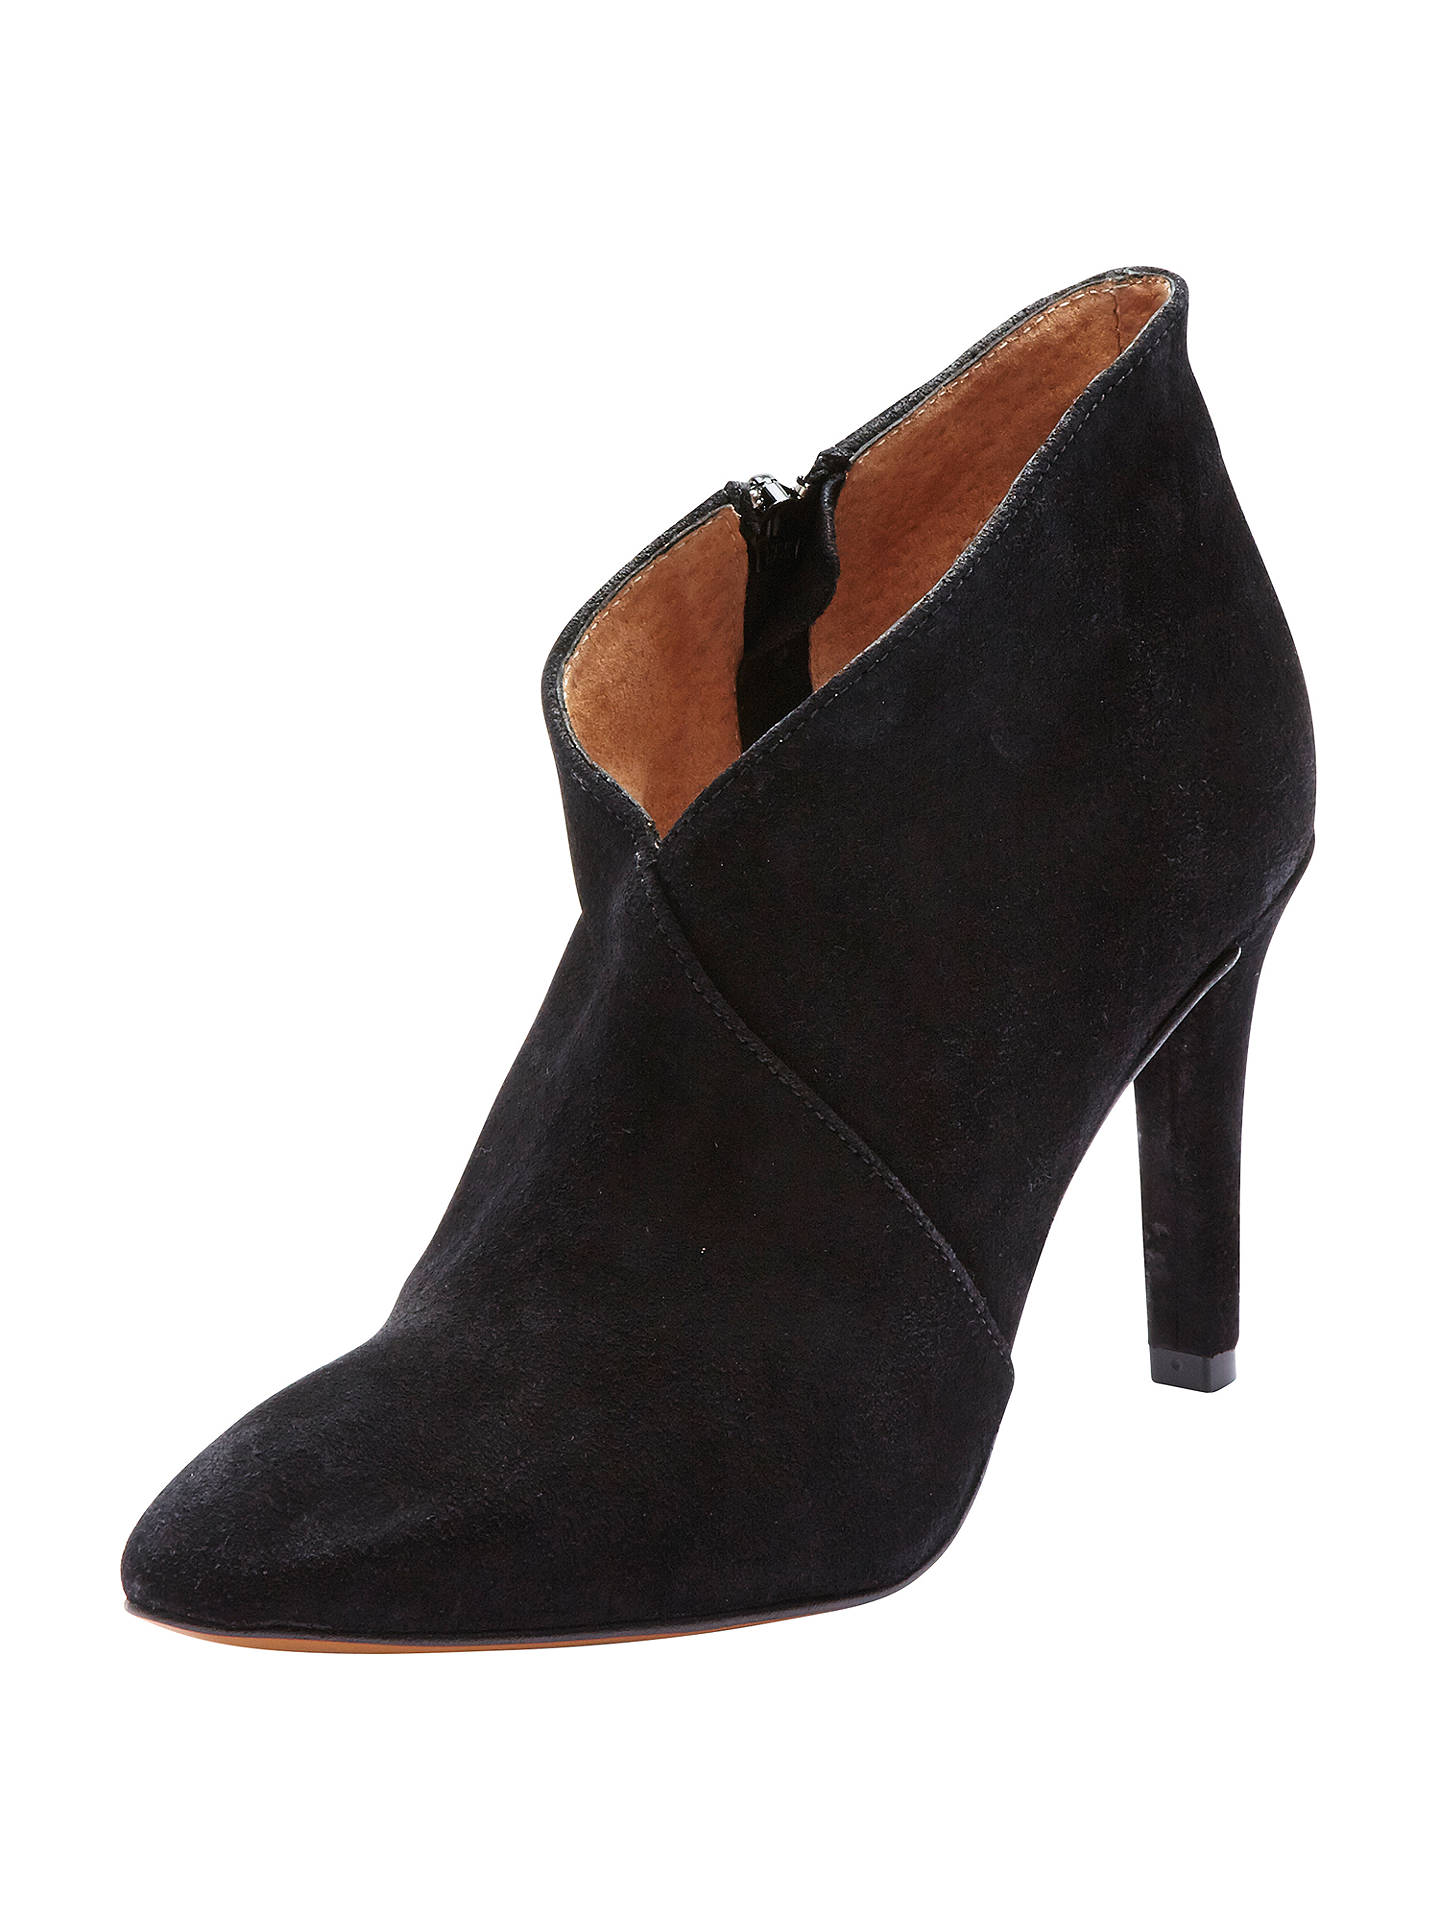 Away Selected Ankle Alexandria Cut At Femme Heeled Stiletto Boots ymONn0Pv8w